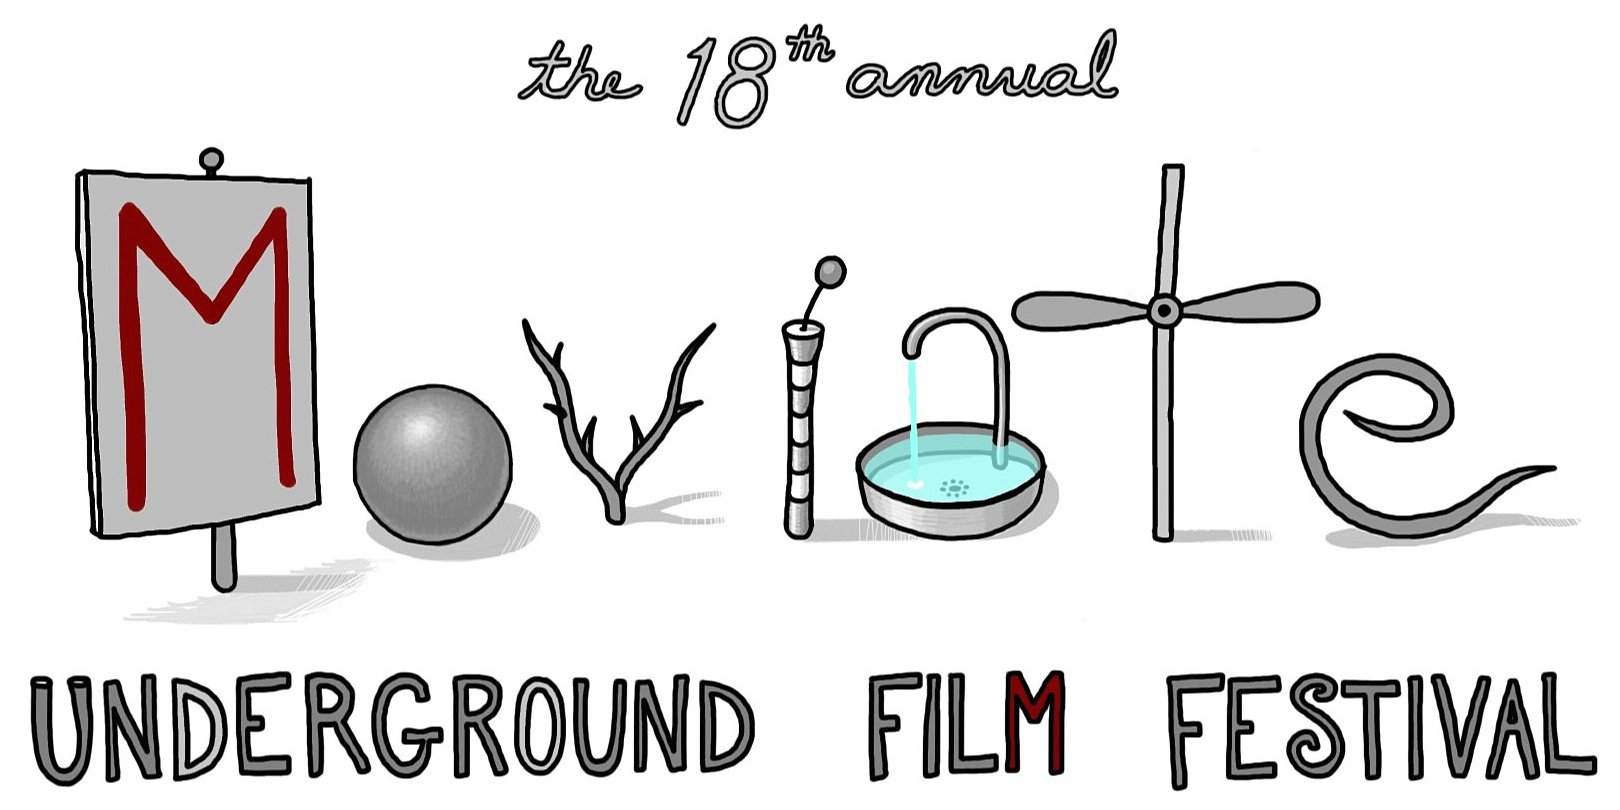 Moviate Underground 18th Annual Film Festival